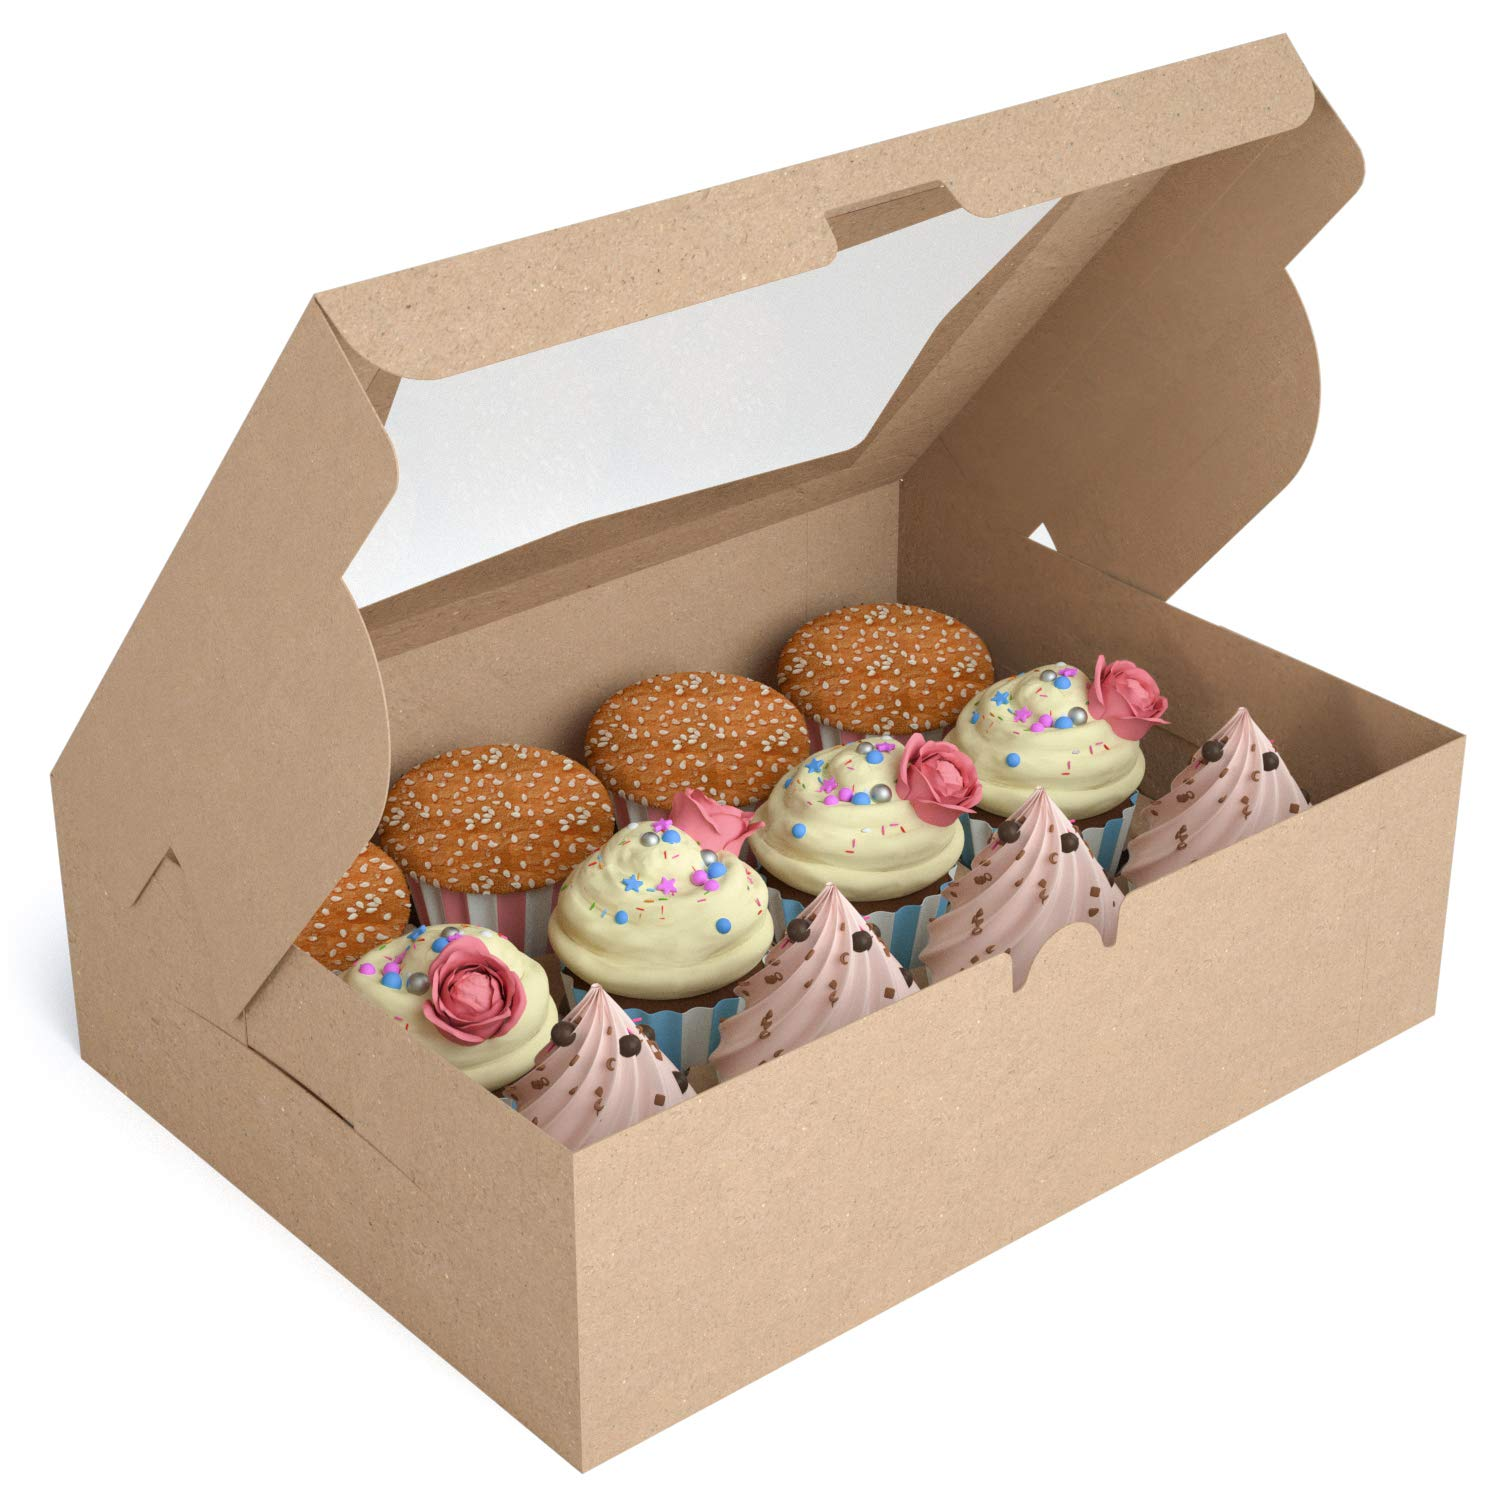 X-Chef Cupcake Boxes, Food Grade Kraft Bakery Boxes with Inserts and Display Windows Fits 12 Cupcakes or Muffins,12 Packs by X-Chef